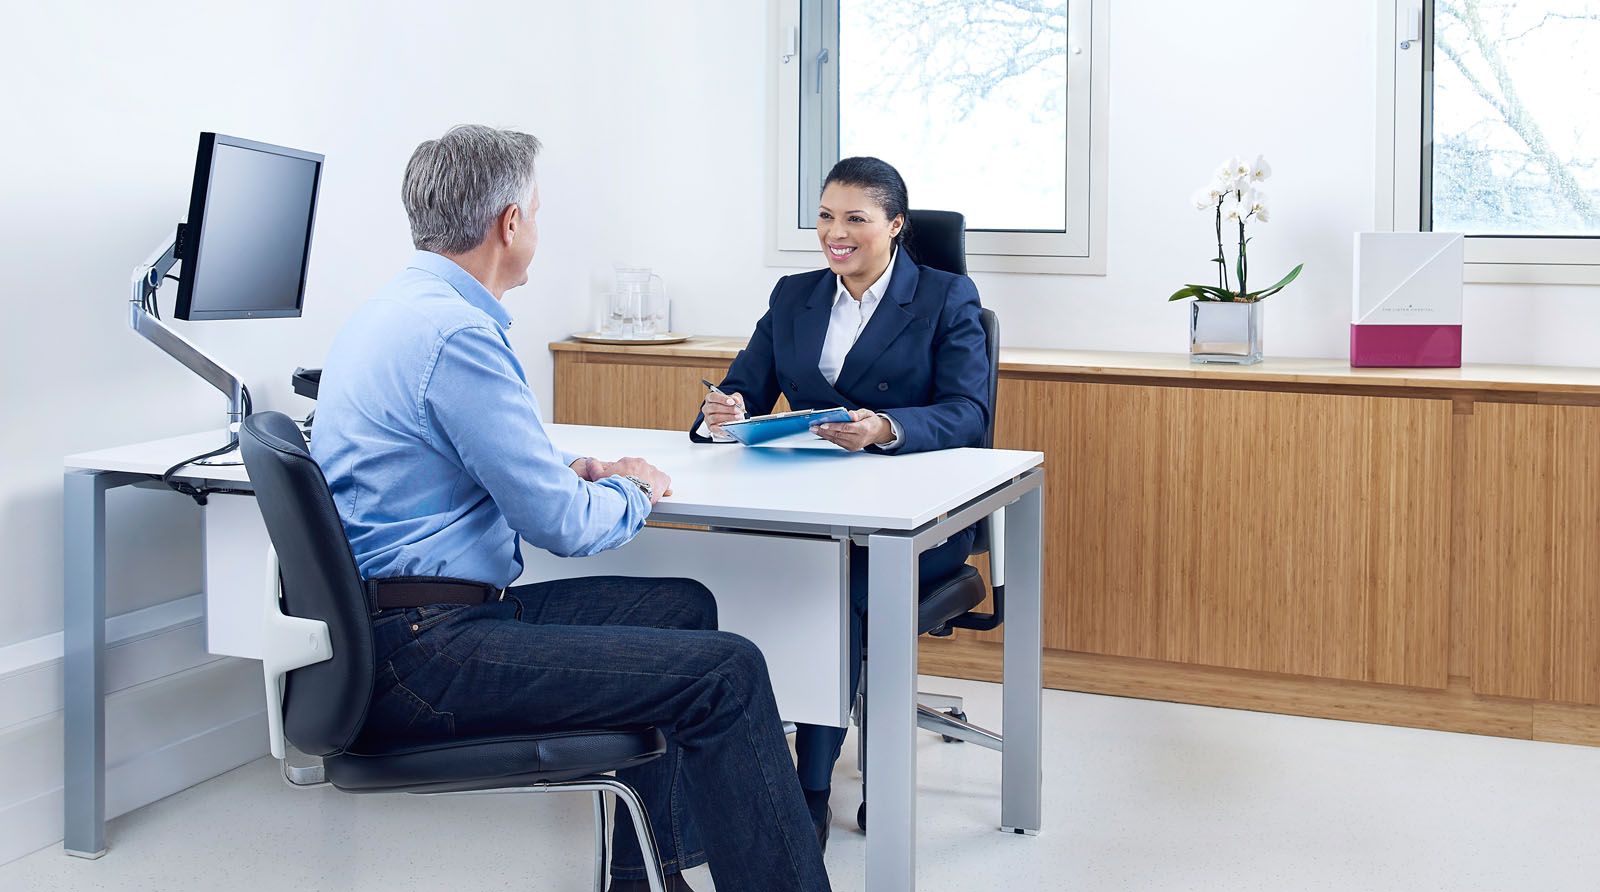 Patient and consultant in an office